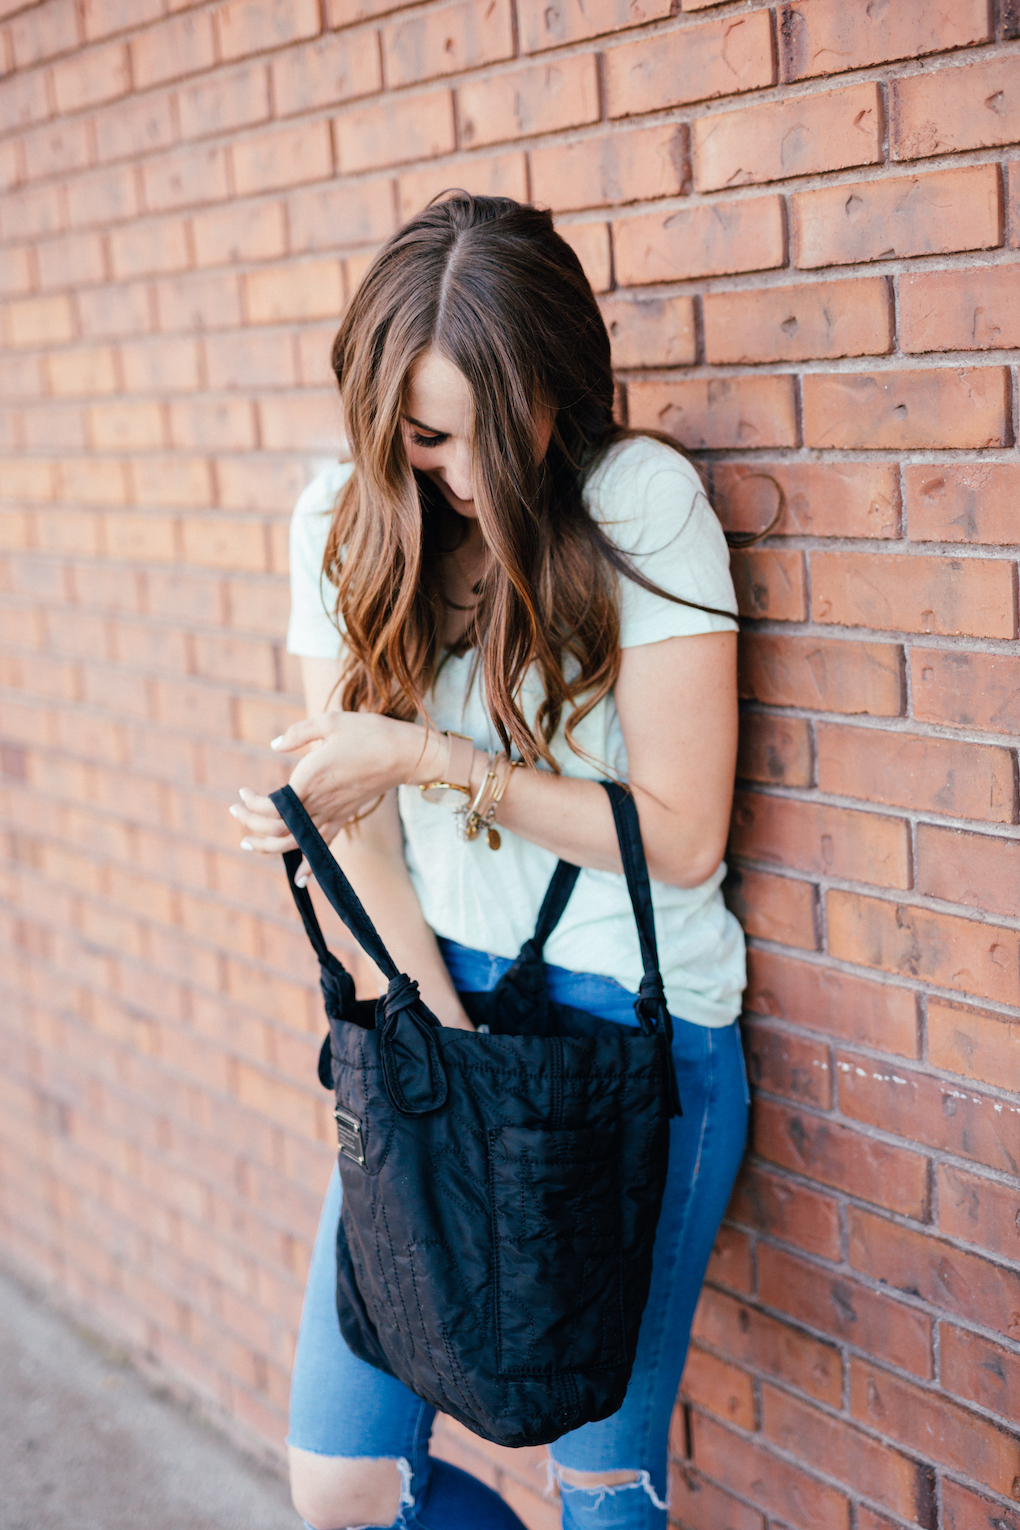 Girl with long brown hair looking in black marc jacobs bag